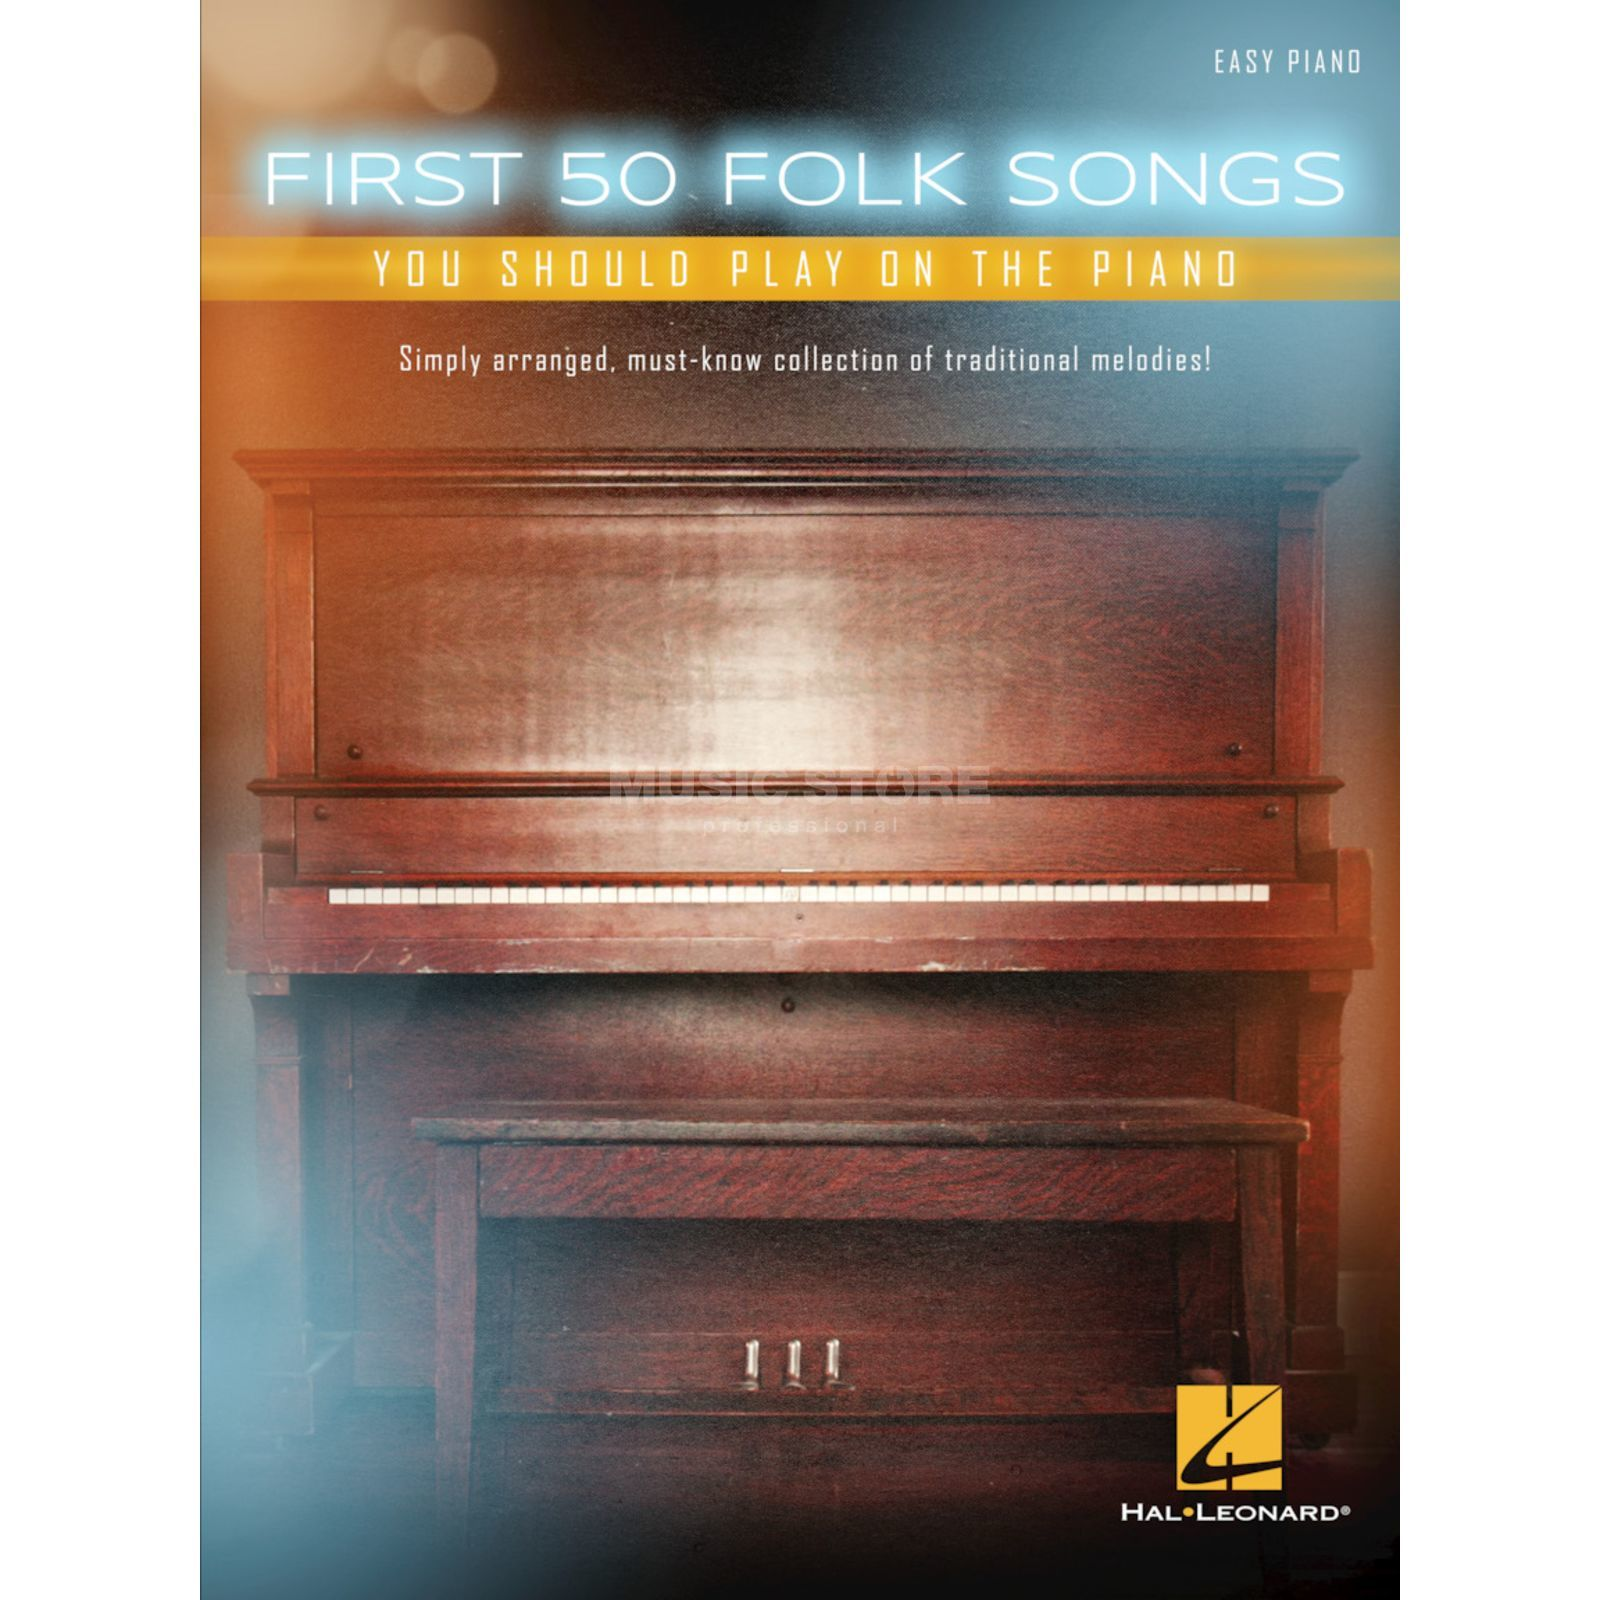 Hal Leonard First 50 Folk Songs You Should Play On The Piano Produktbild